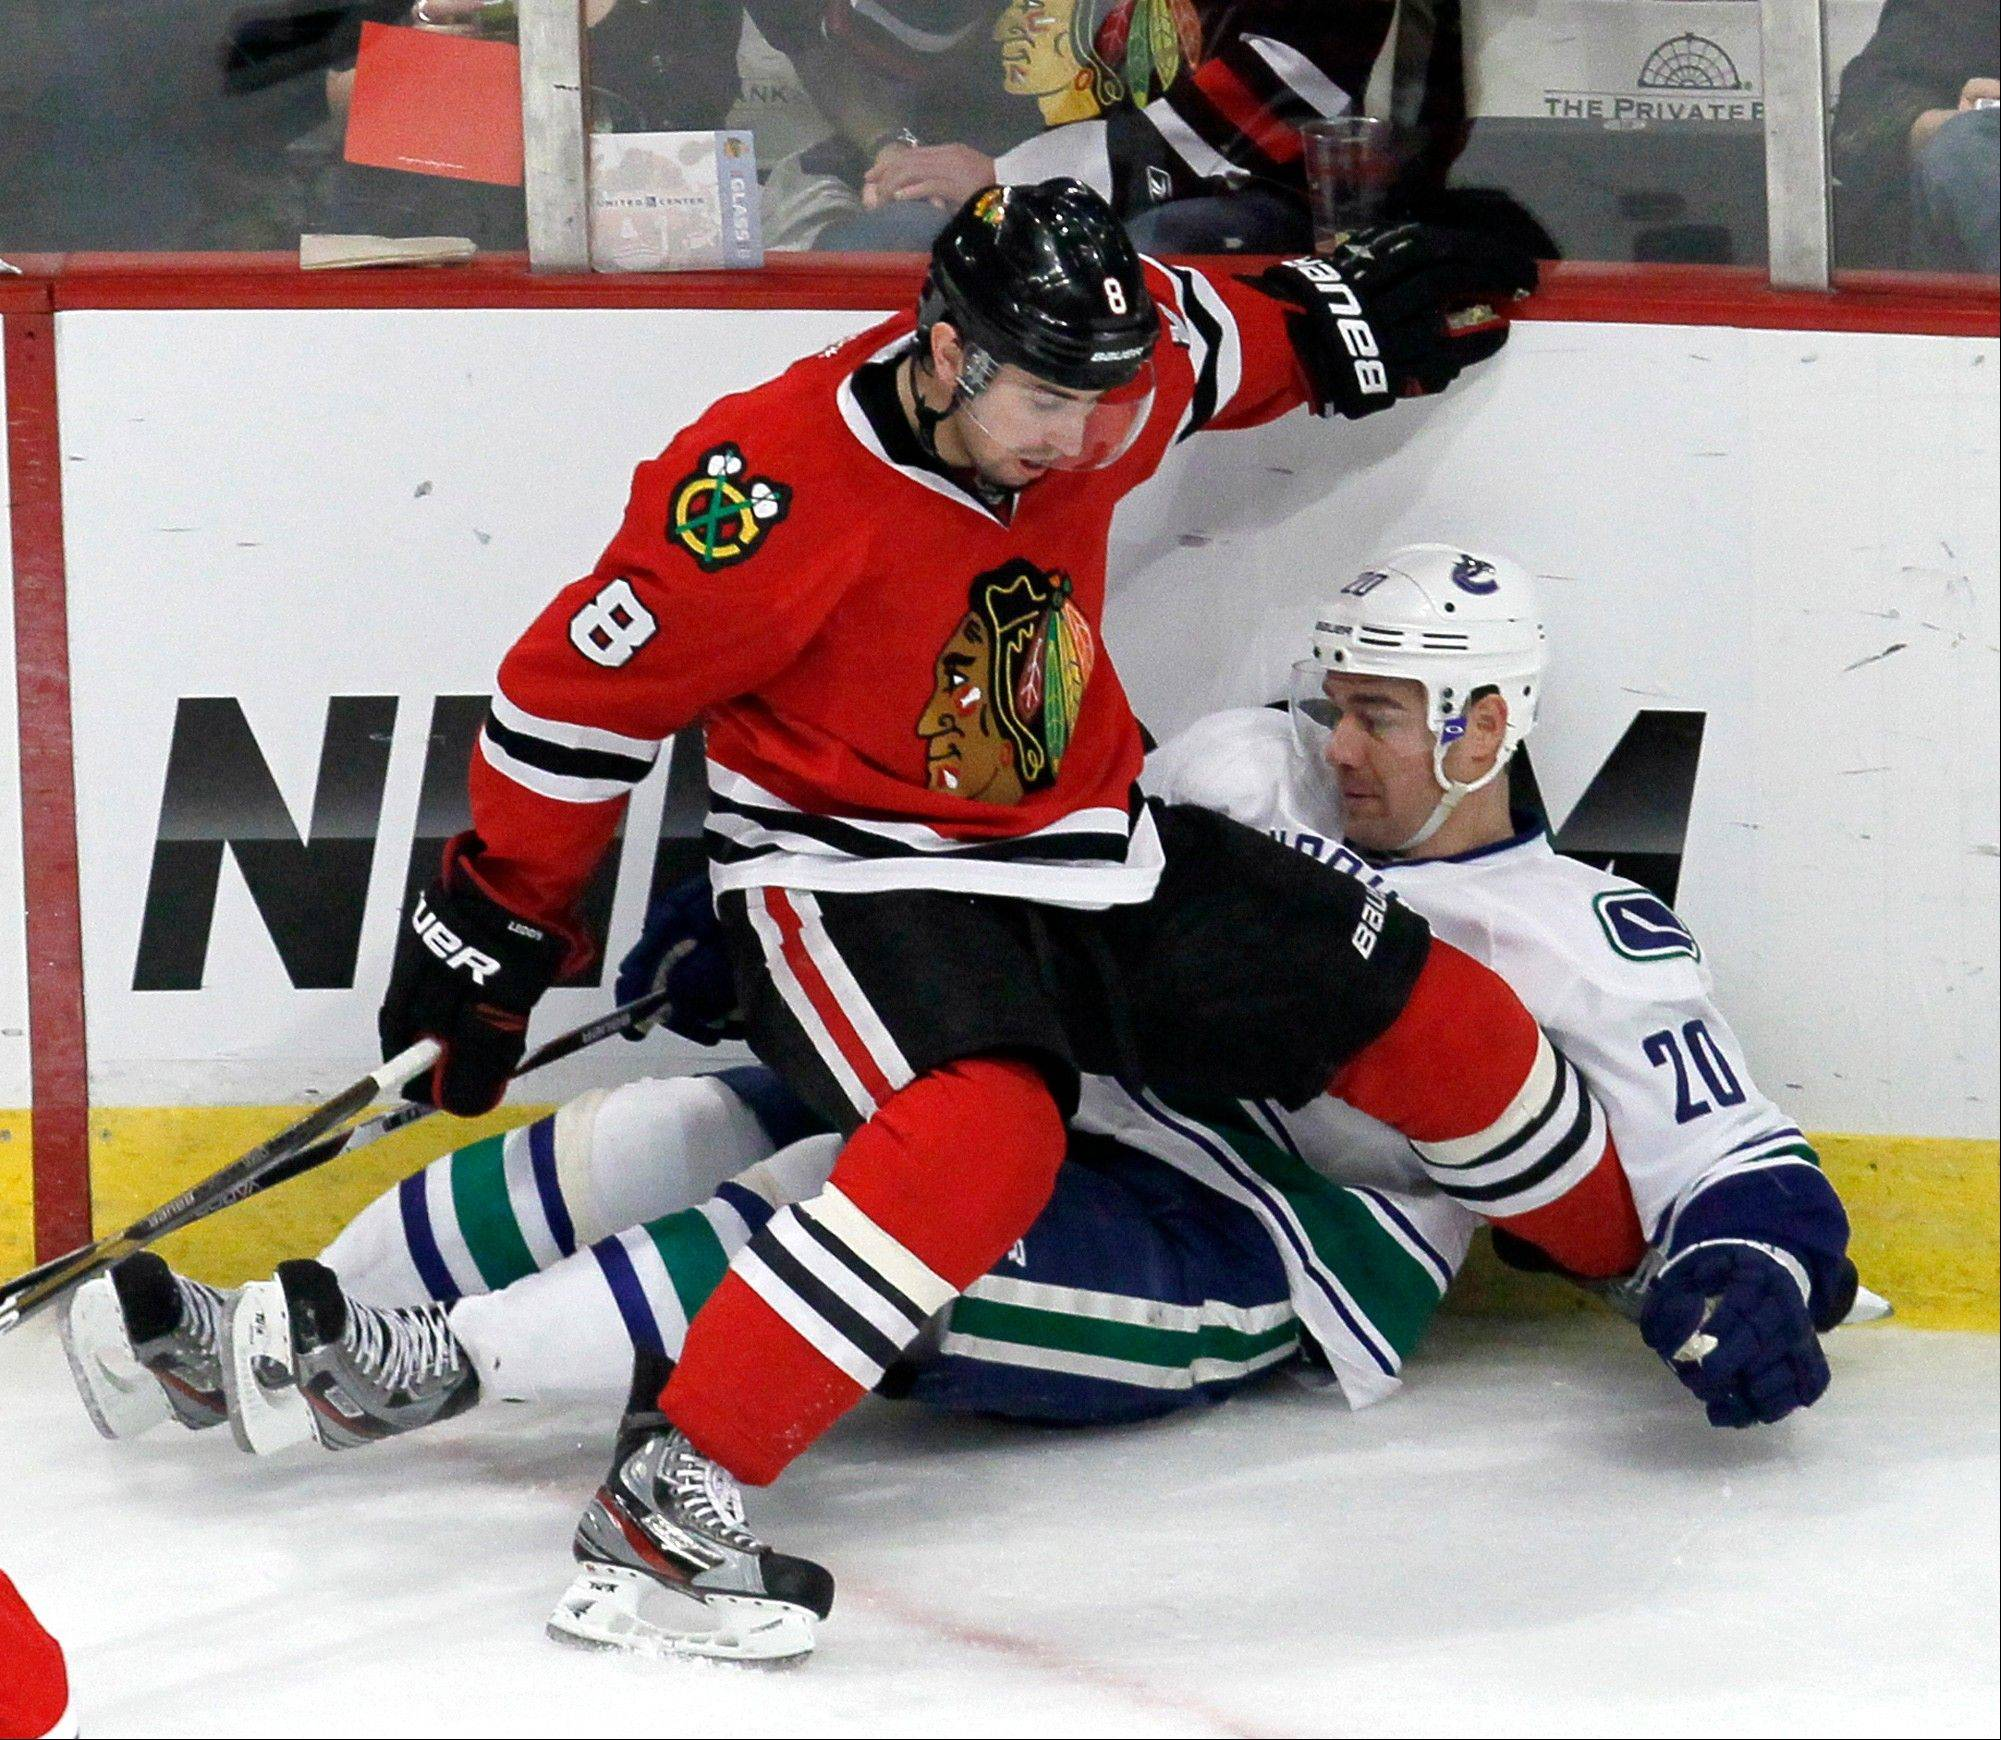 Blackhawks defenseman Nick Leddy checks Vancouver Canucks left wing Chris Higgins along the boards Wednesday during the third period.